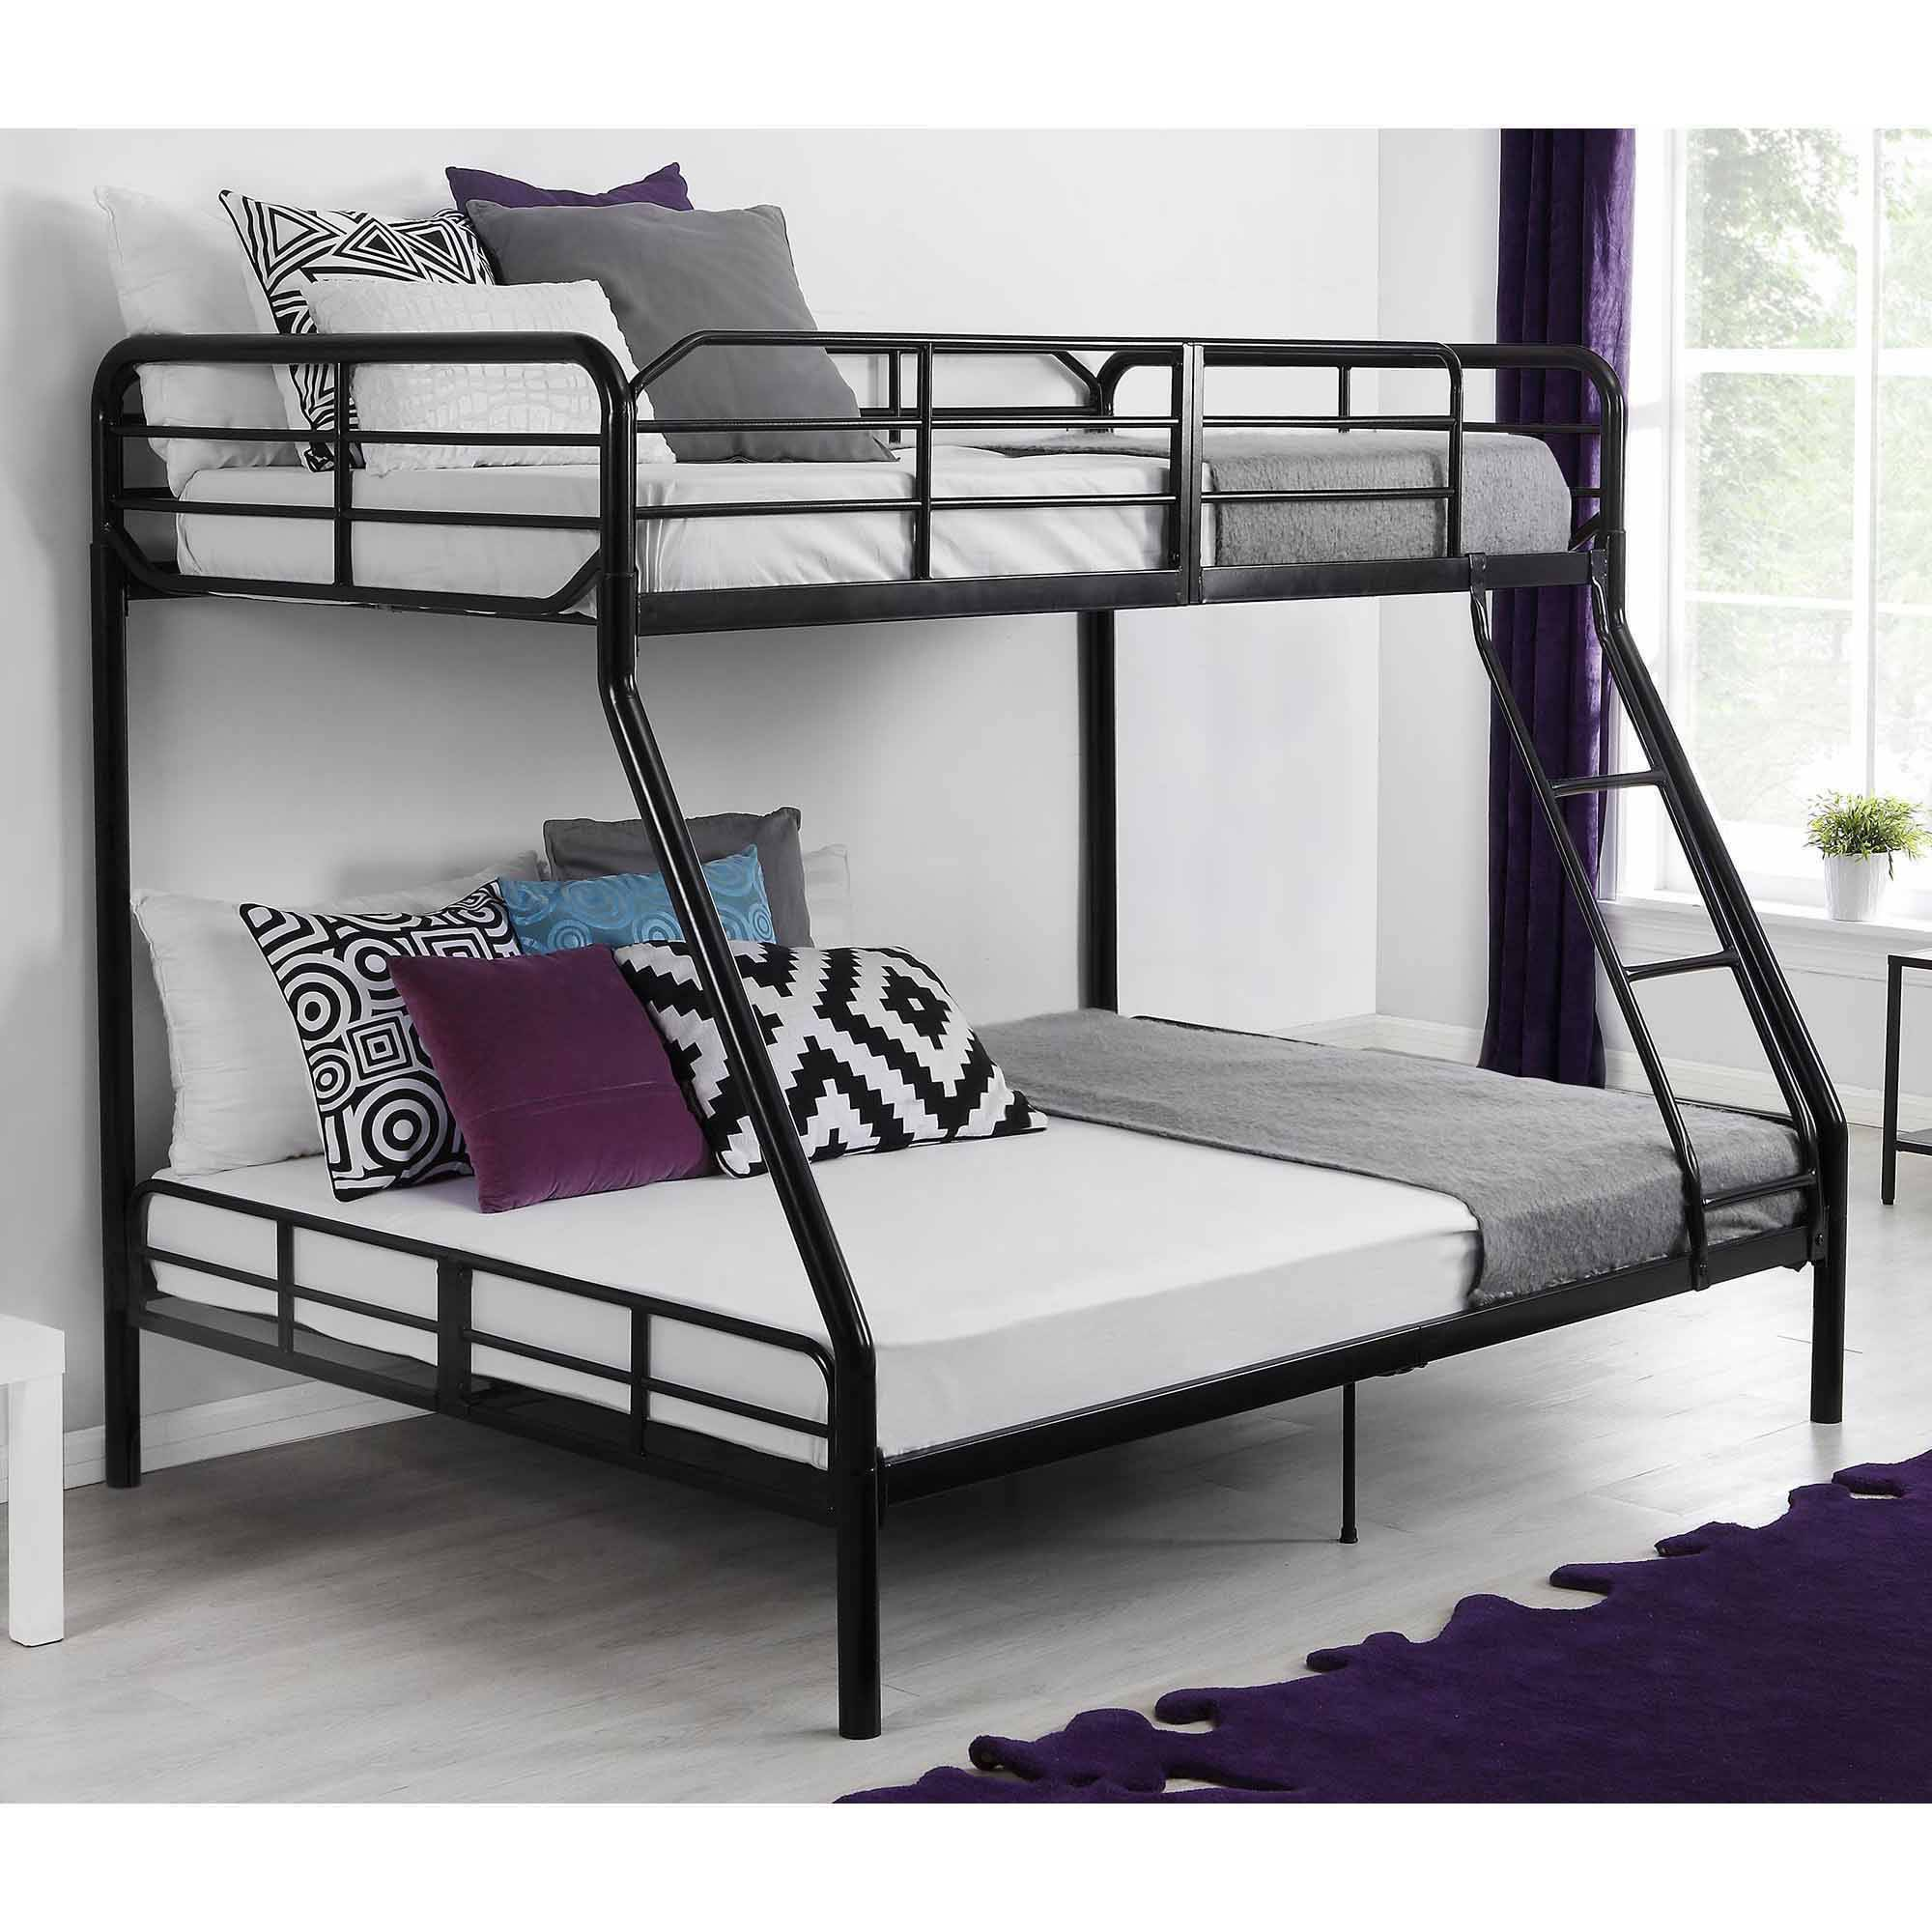 bed frame walmart 17 download